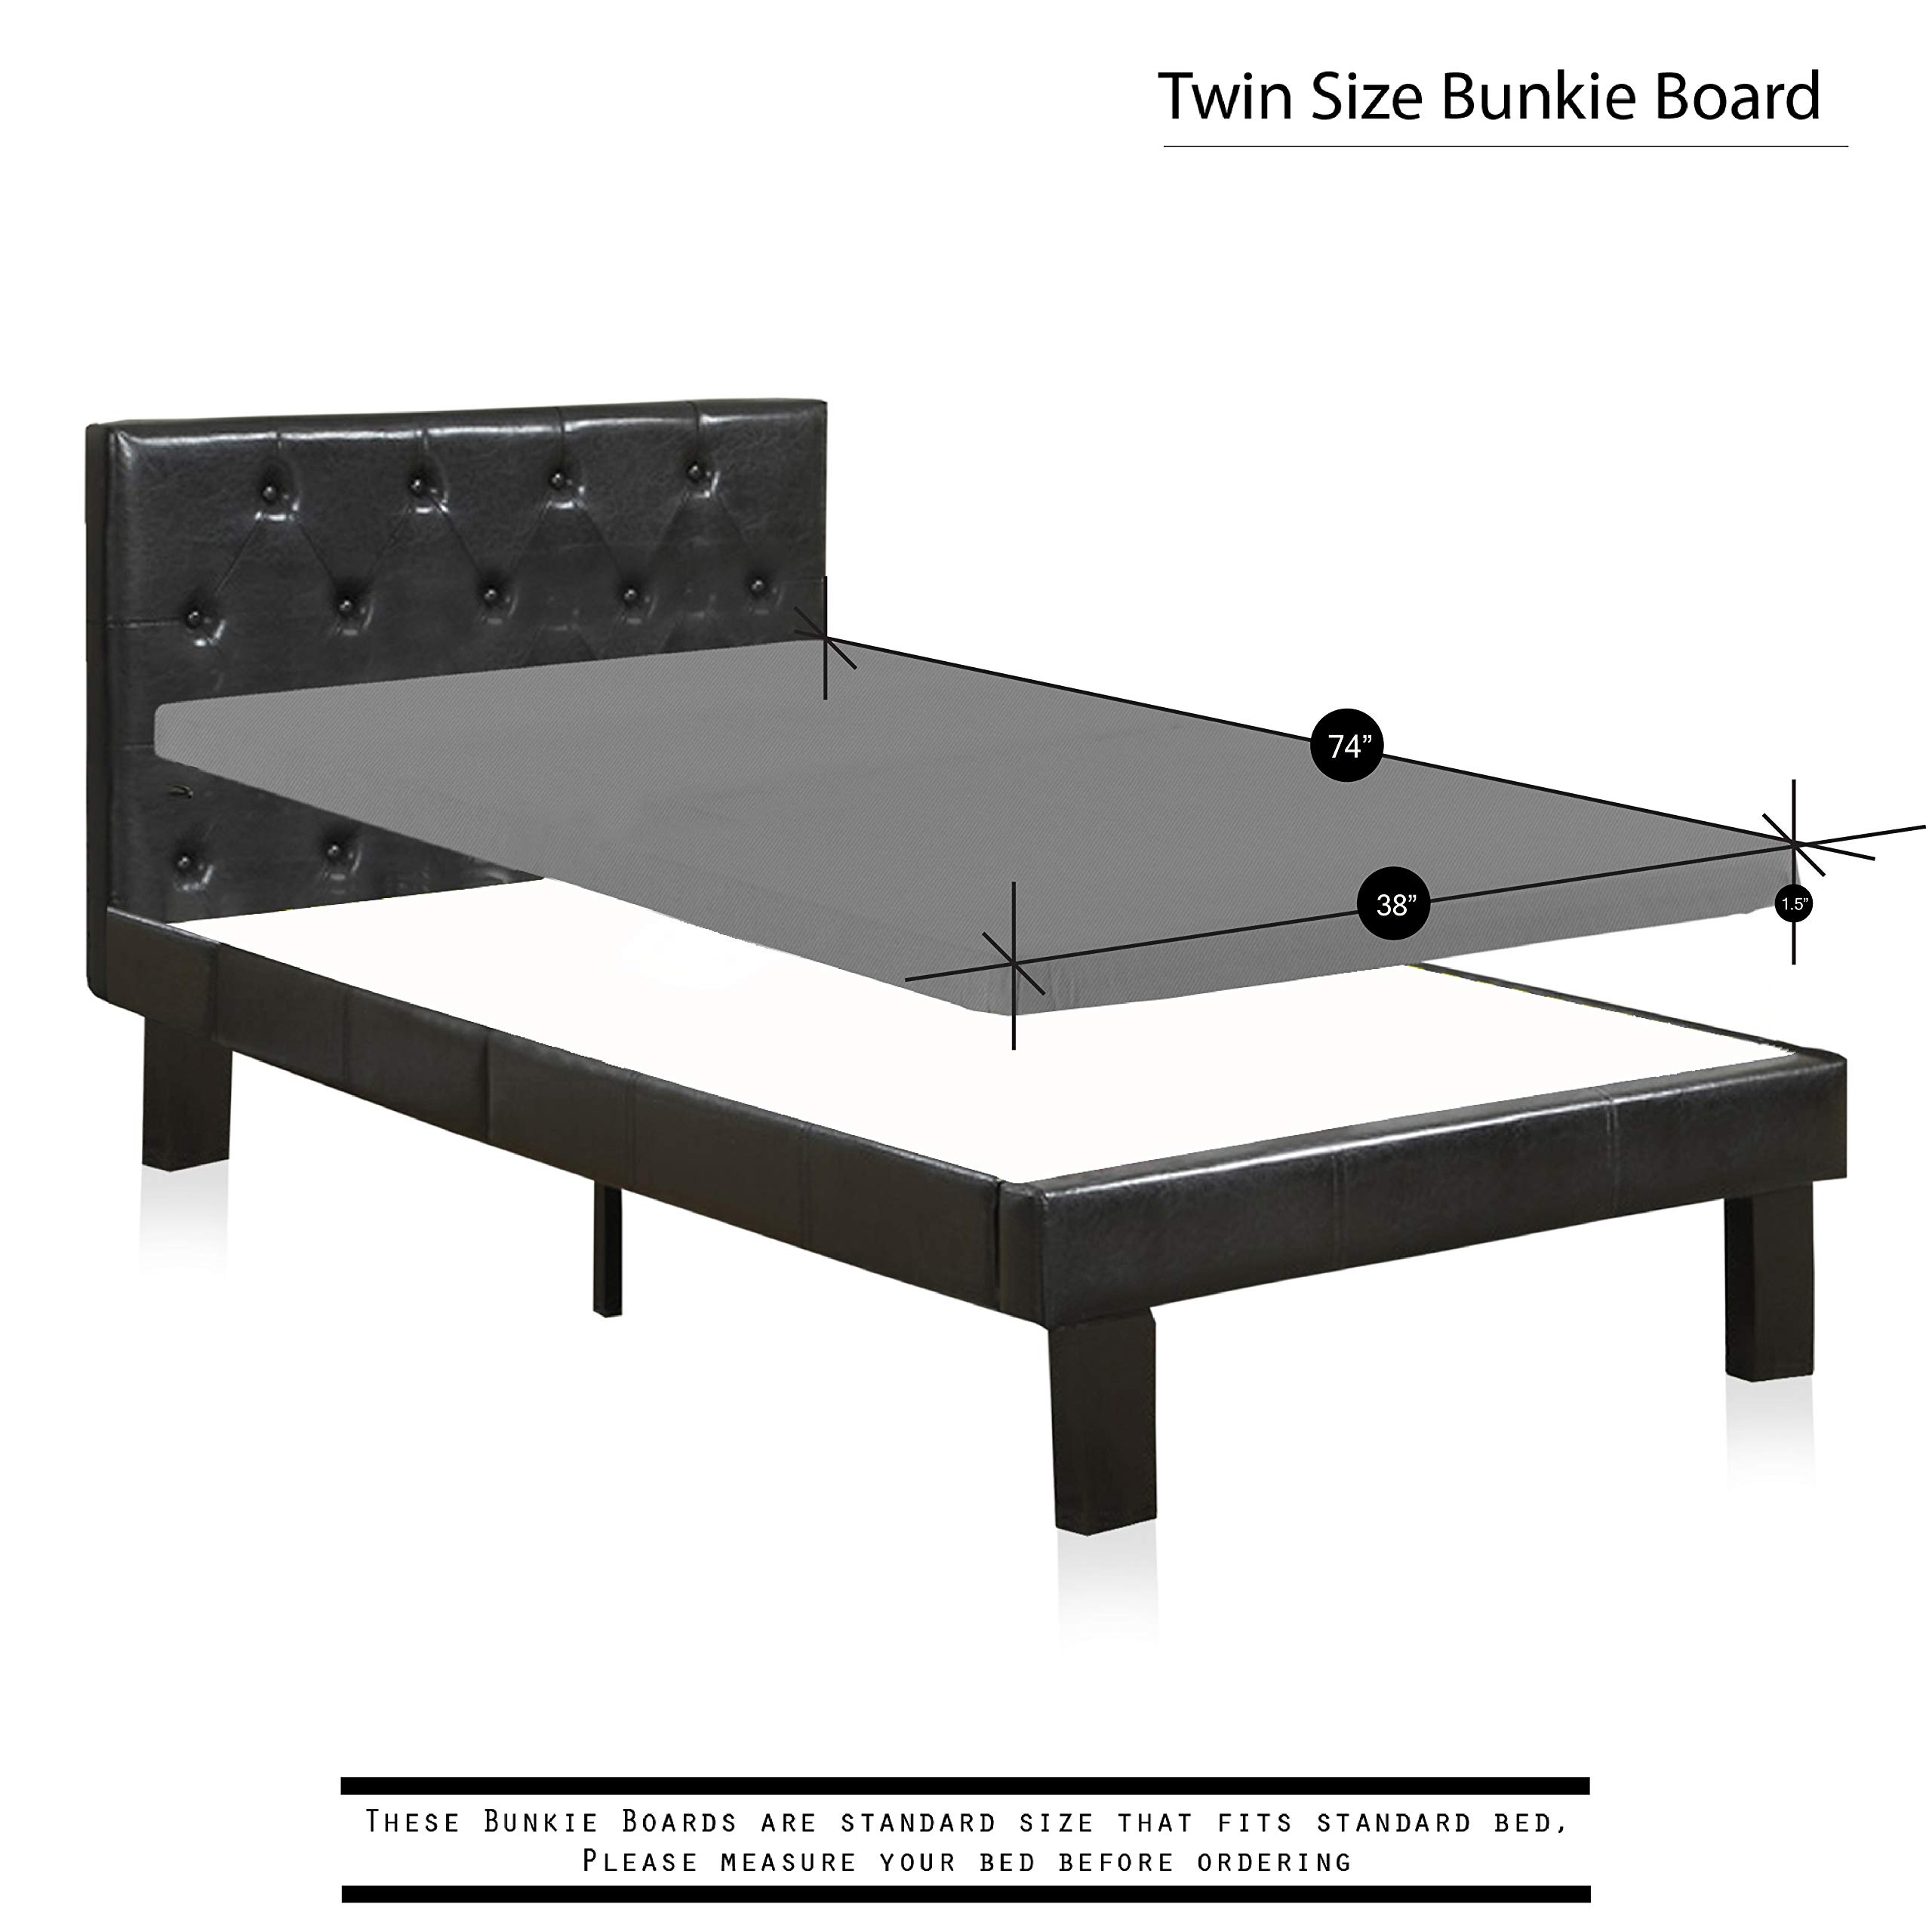 Continental Sleep, 1.5-inch Fully Assembled Foundation Bunkie Board, Twin Size by Continental Sleep (Image #1)